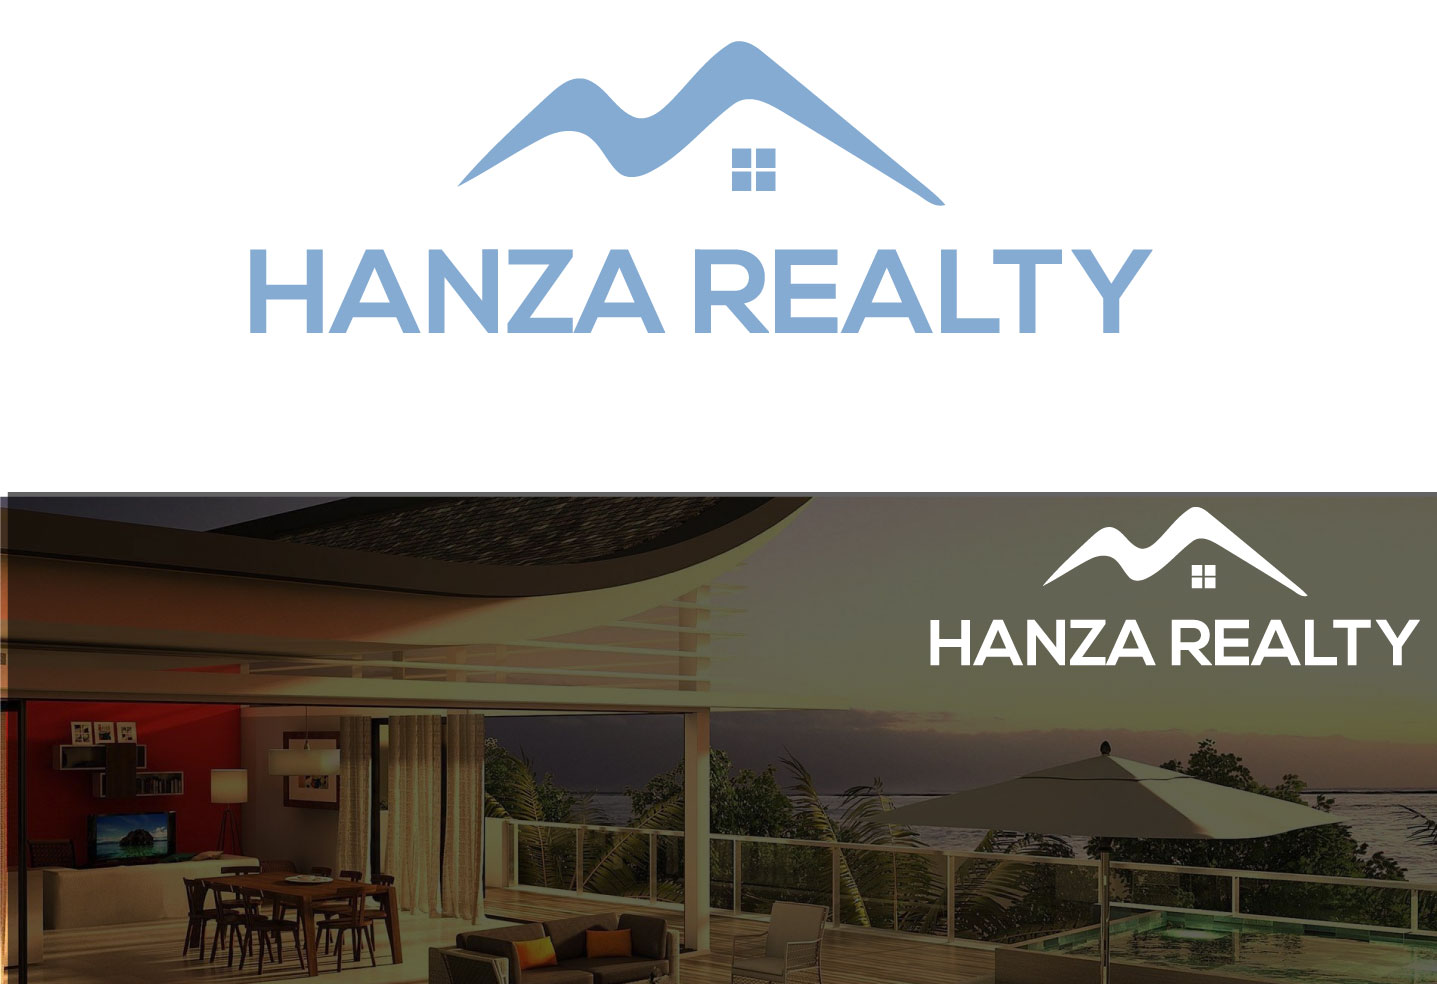 Logo Design by Kamrul Prodhan - Entry No. 290 in the Logo Design Contest Logo Design for Hanza Realty.